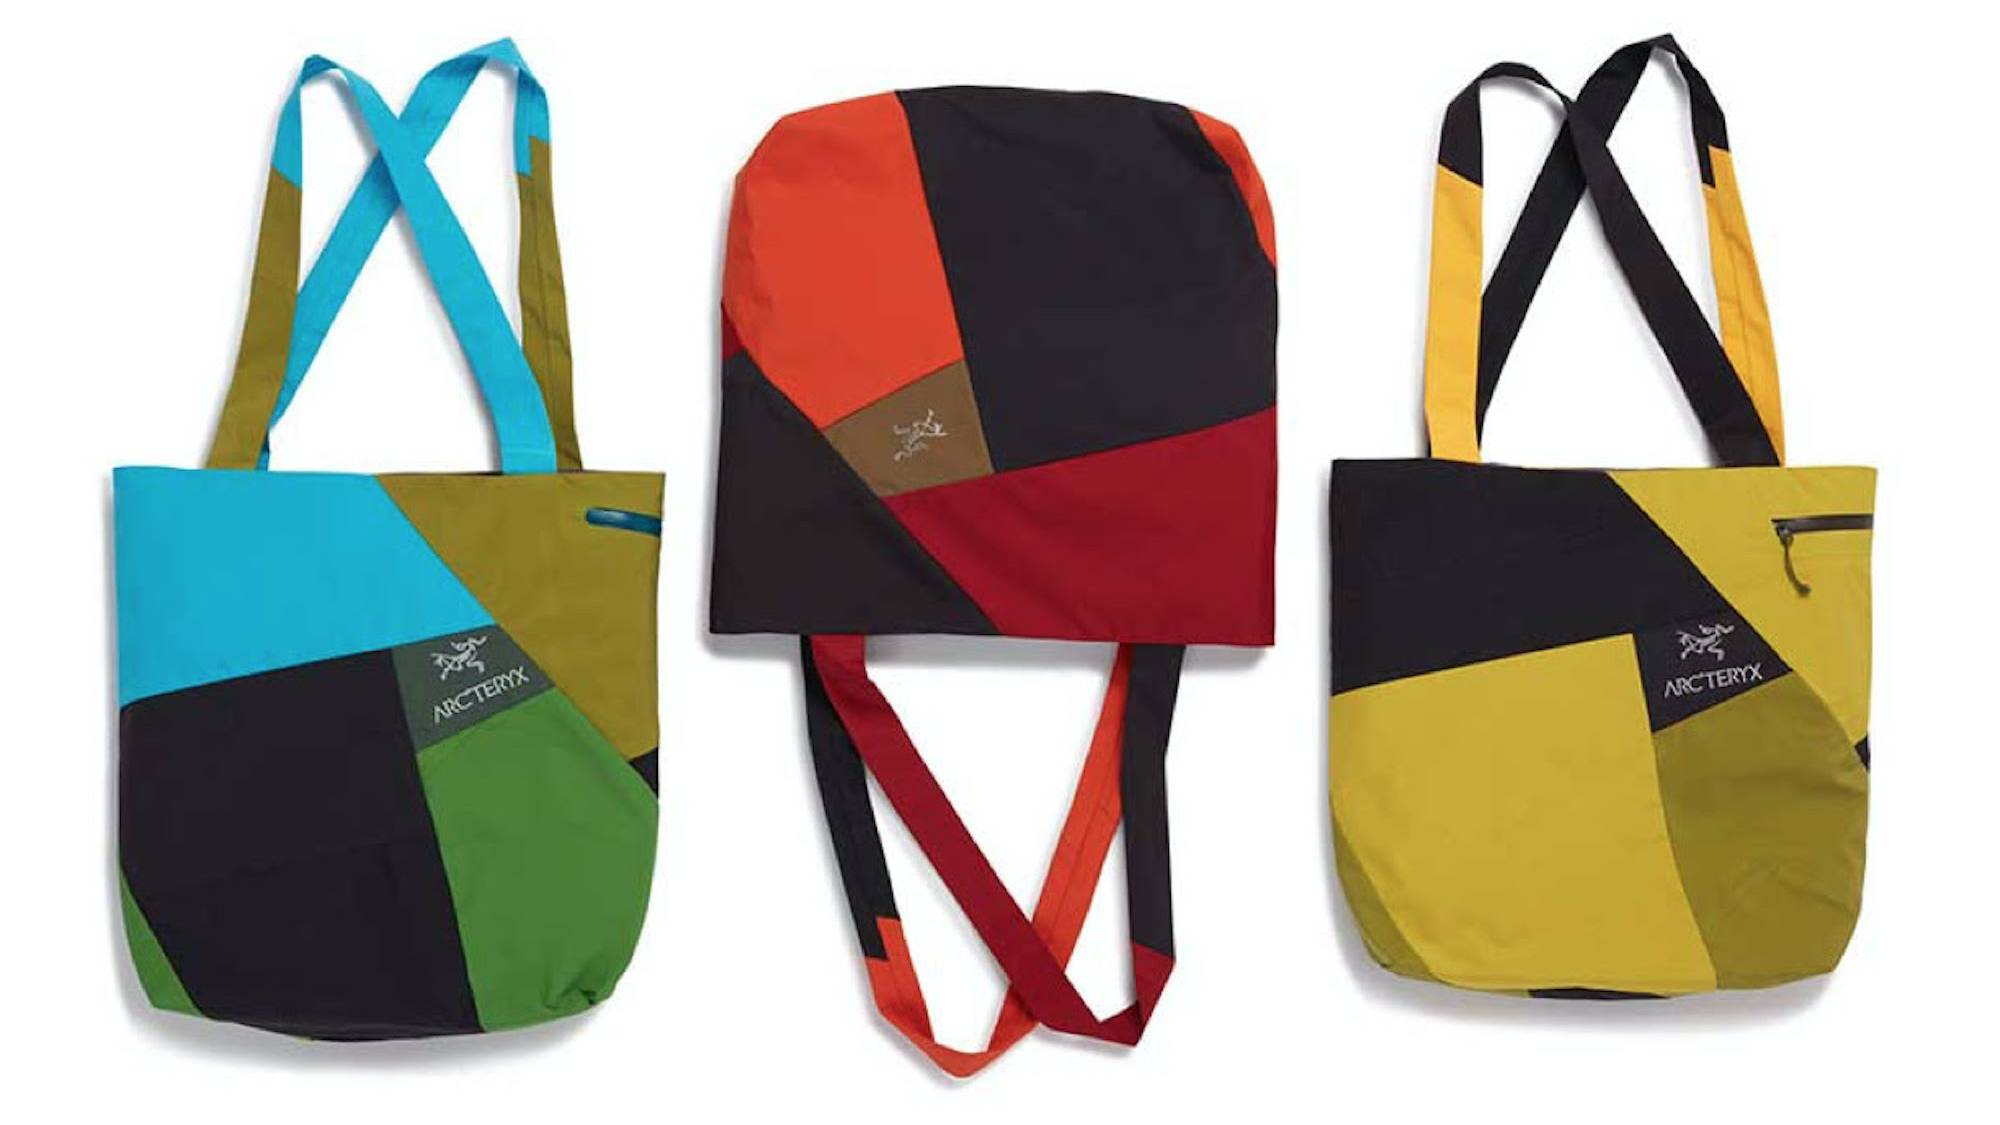 Arc'teryx tote bags made from multi-colored, recycled fabrics